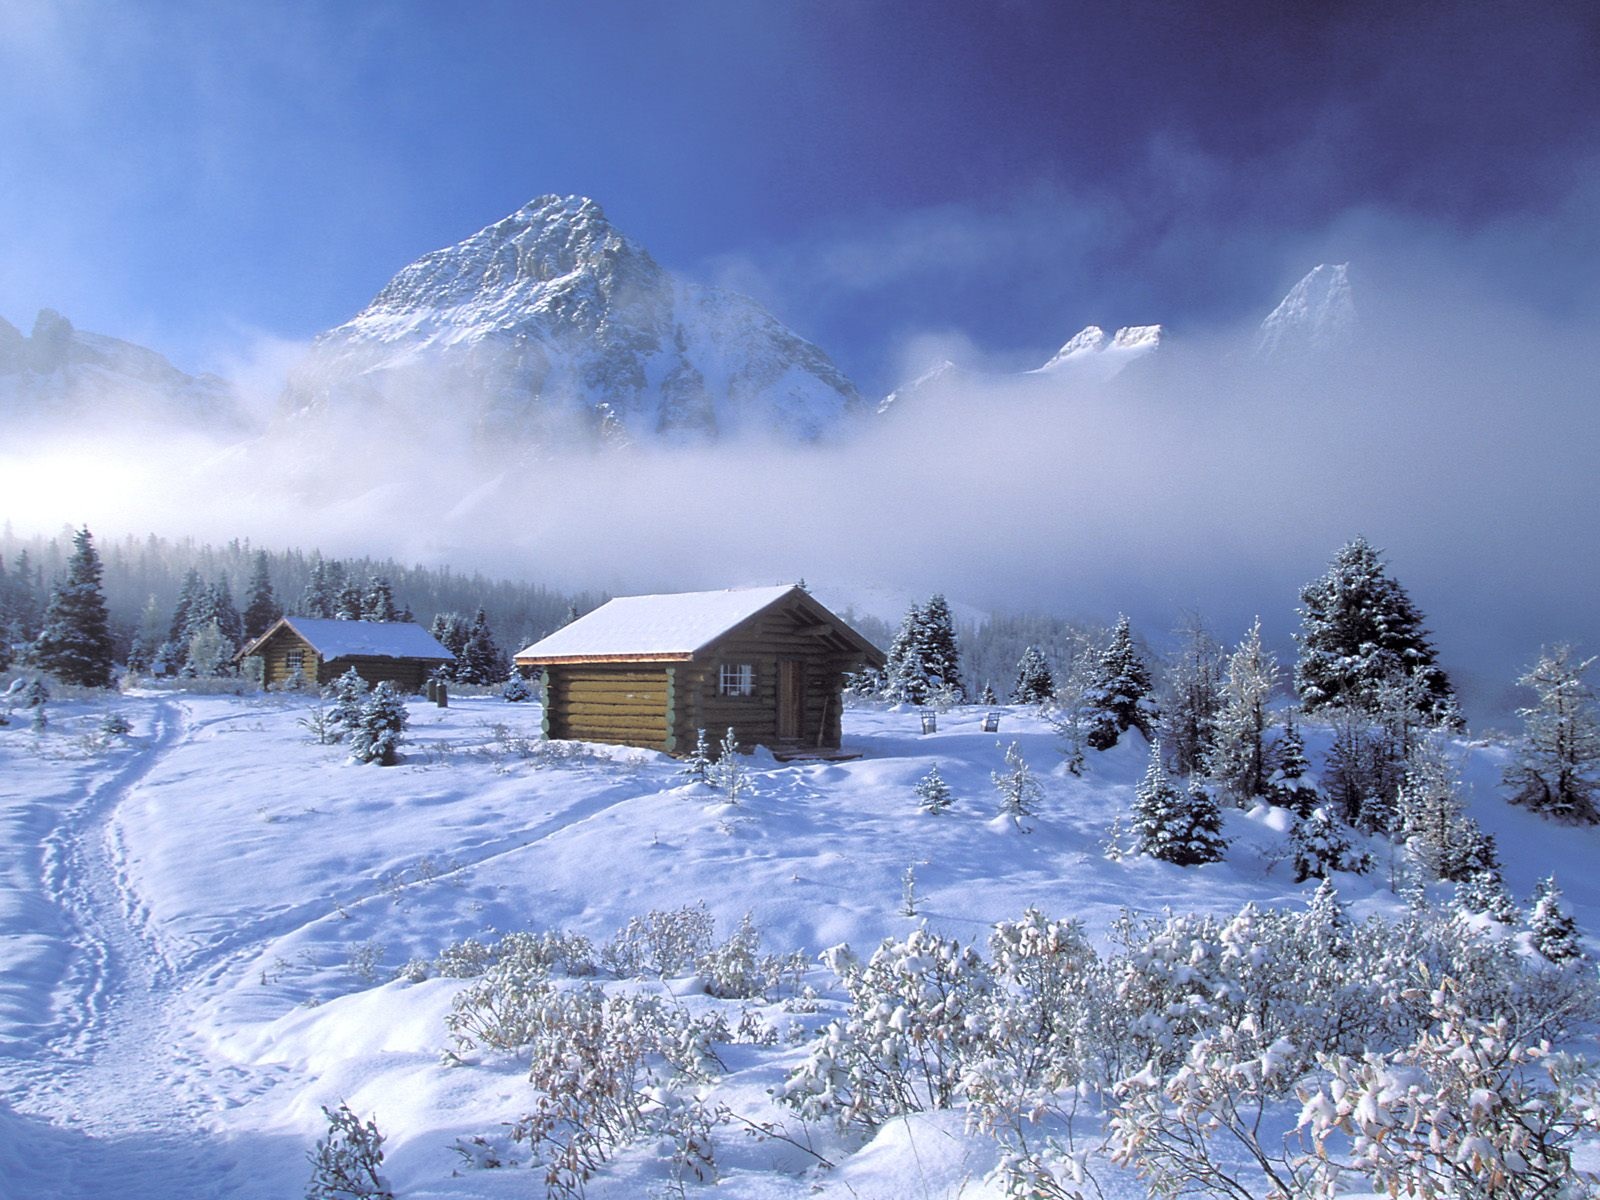 Winter Scenery PowerPoint Background  8 1600x1200